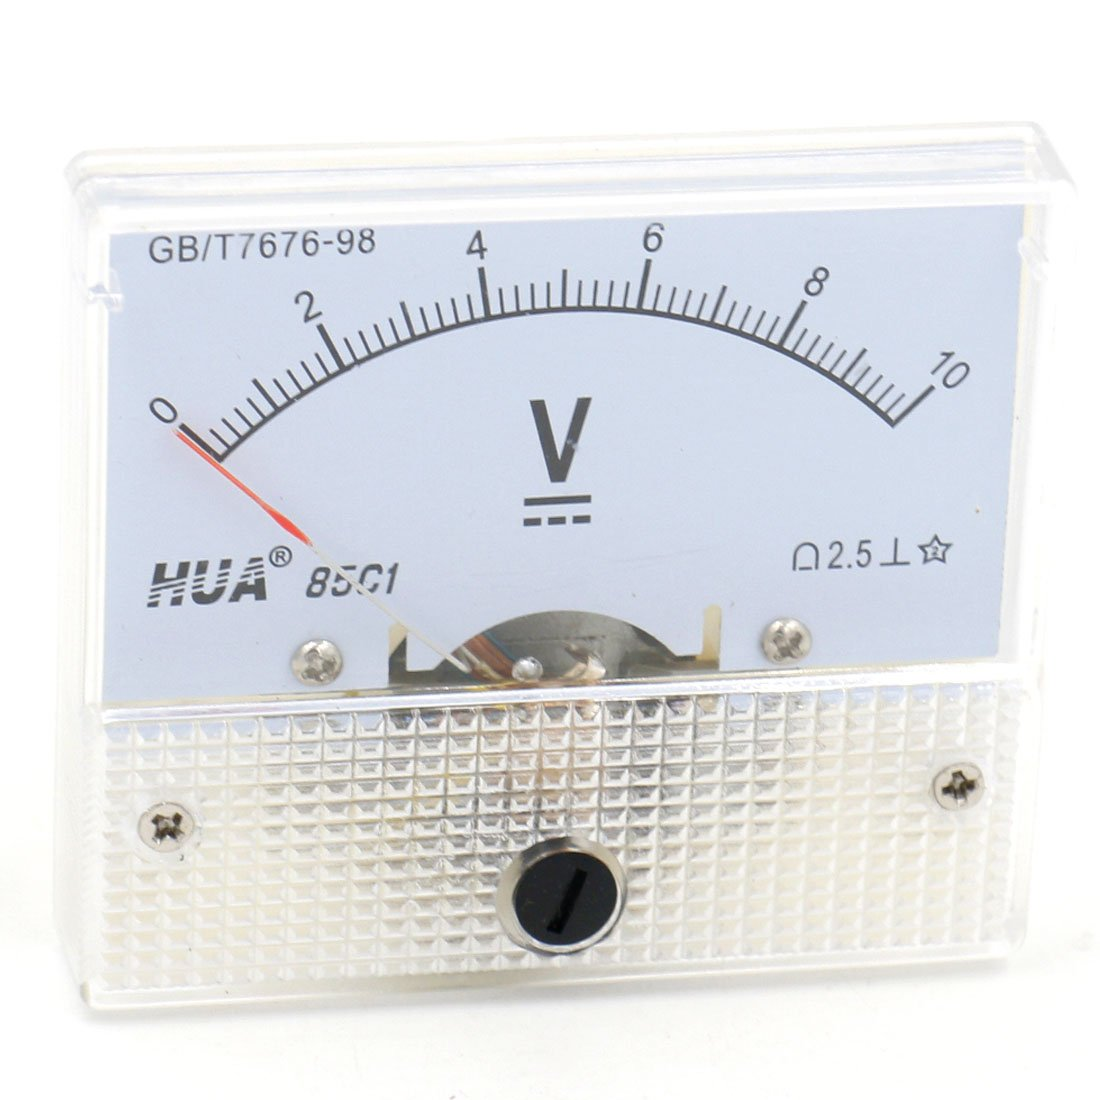 Baomain Analog Voltmeter 85C1 DC 0-10V Rectangle Analog Volt Panel Meter Gauge Hua 85C1-V-10V